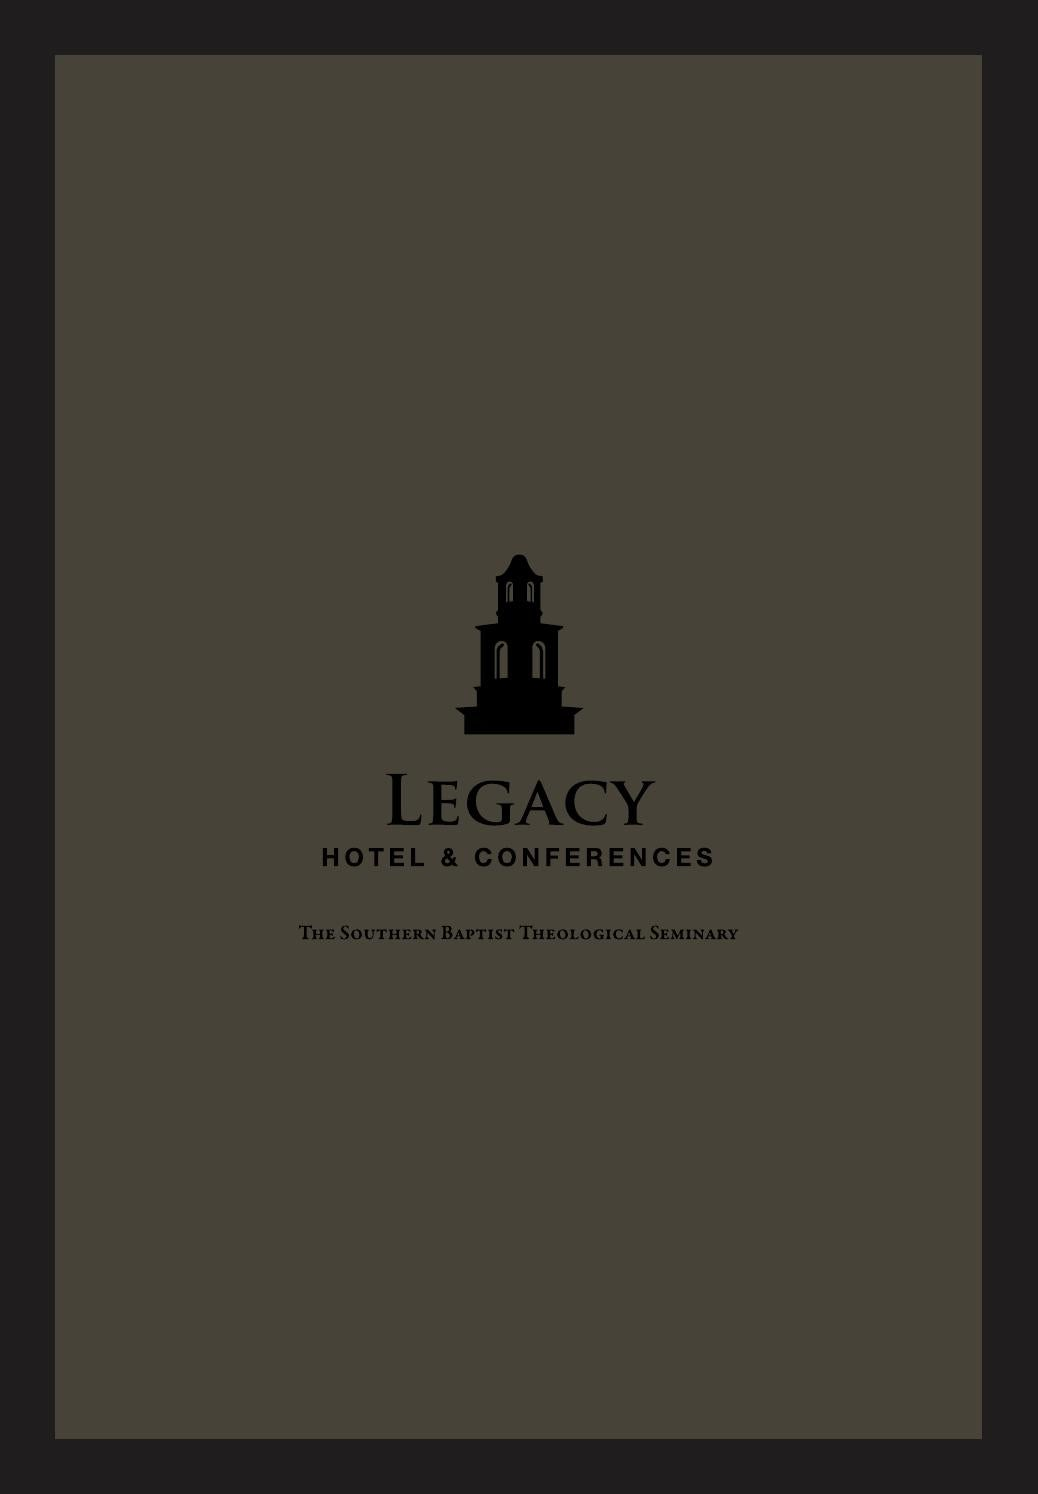 Legacy Hotel and Conferences by The Southern Baptist ... on boyce college campus map, sbvc campus map, intel campus map, swbts campus map, sbcc campus map, church campus map,